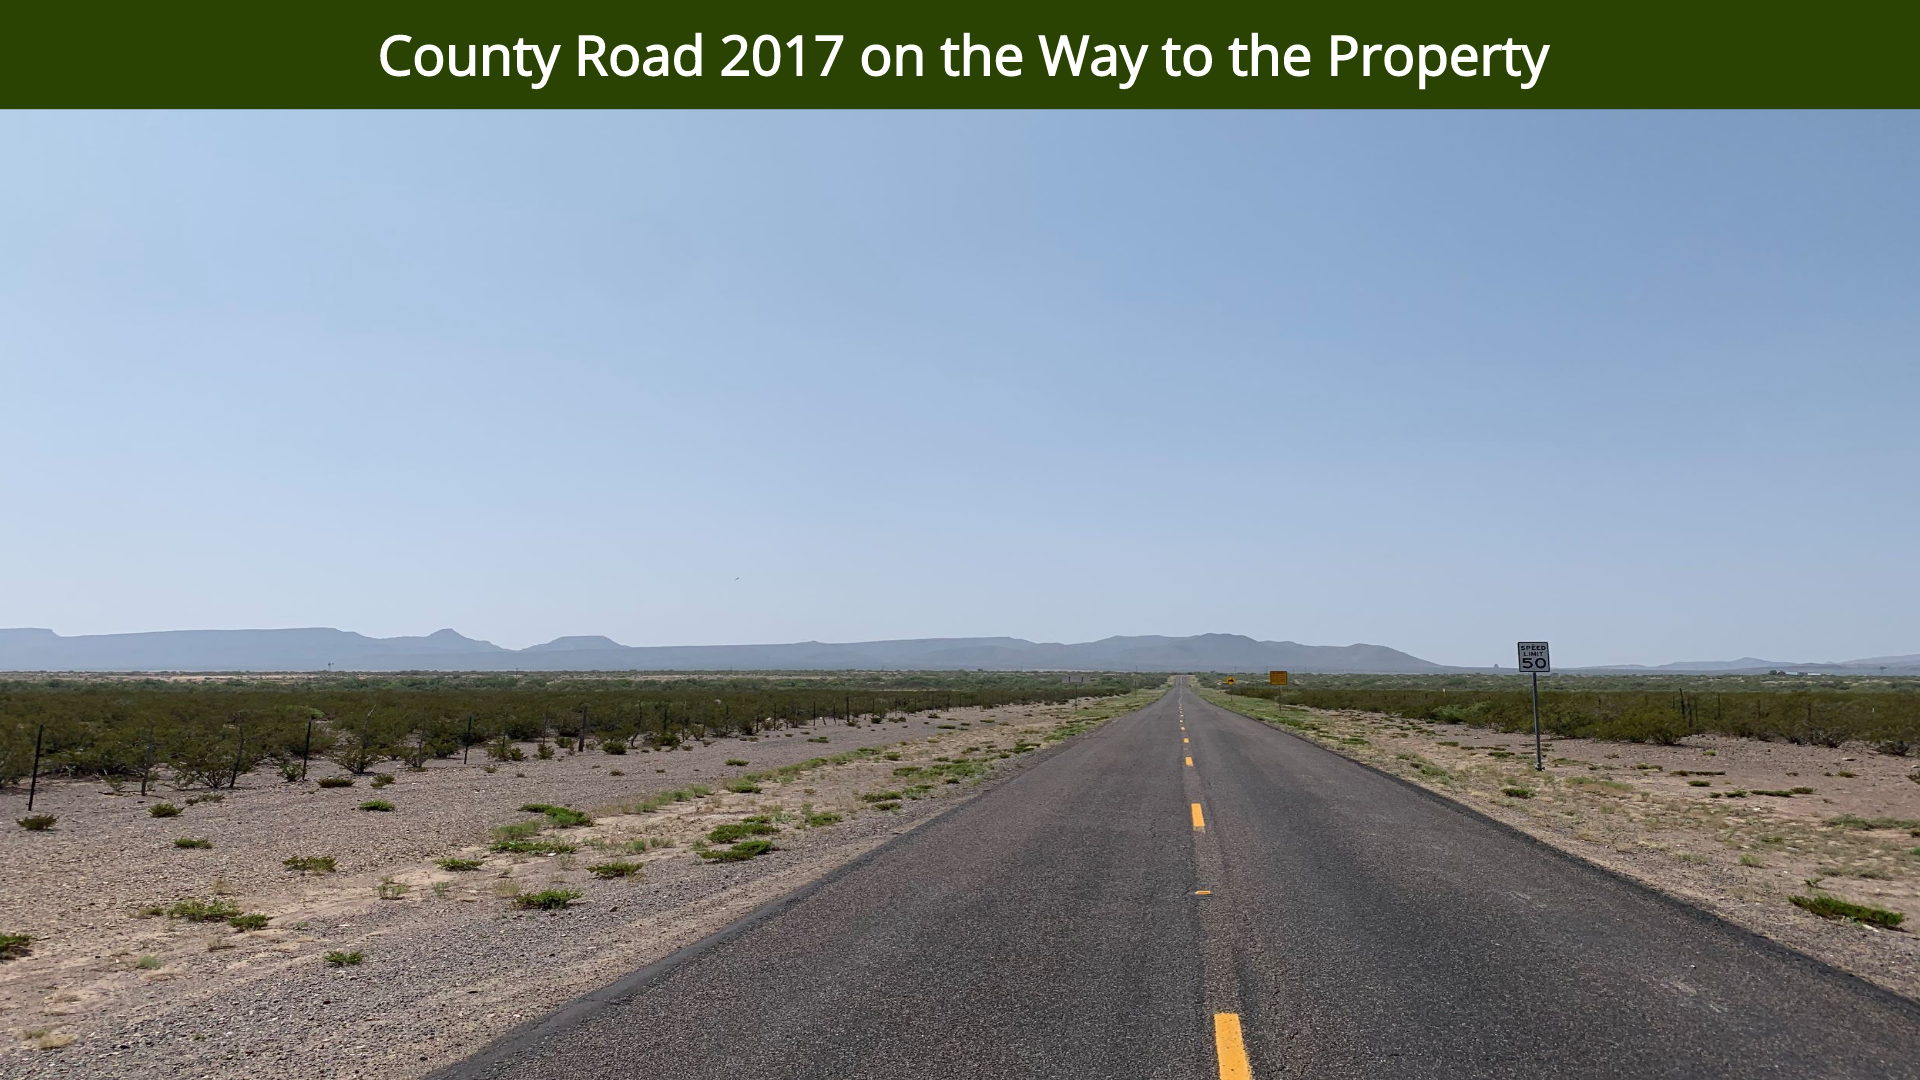 County Road 2017 on the Way to the Prope